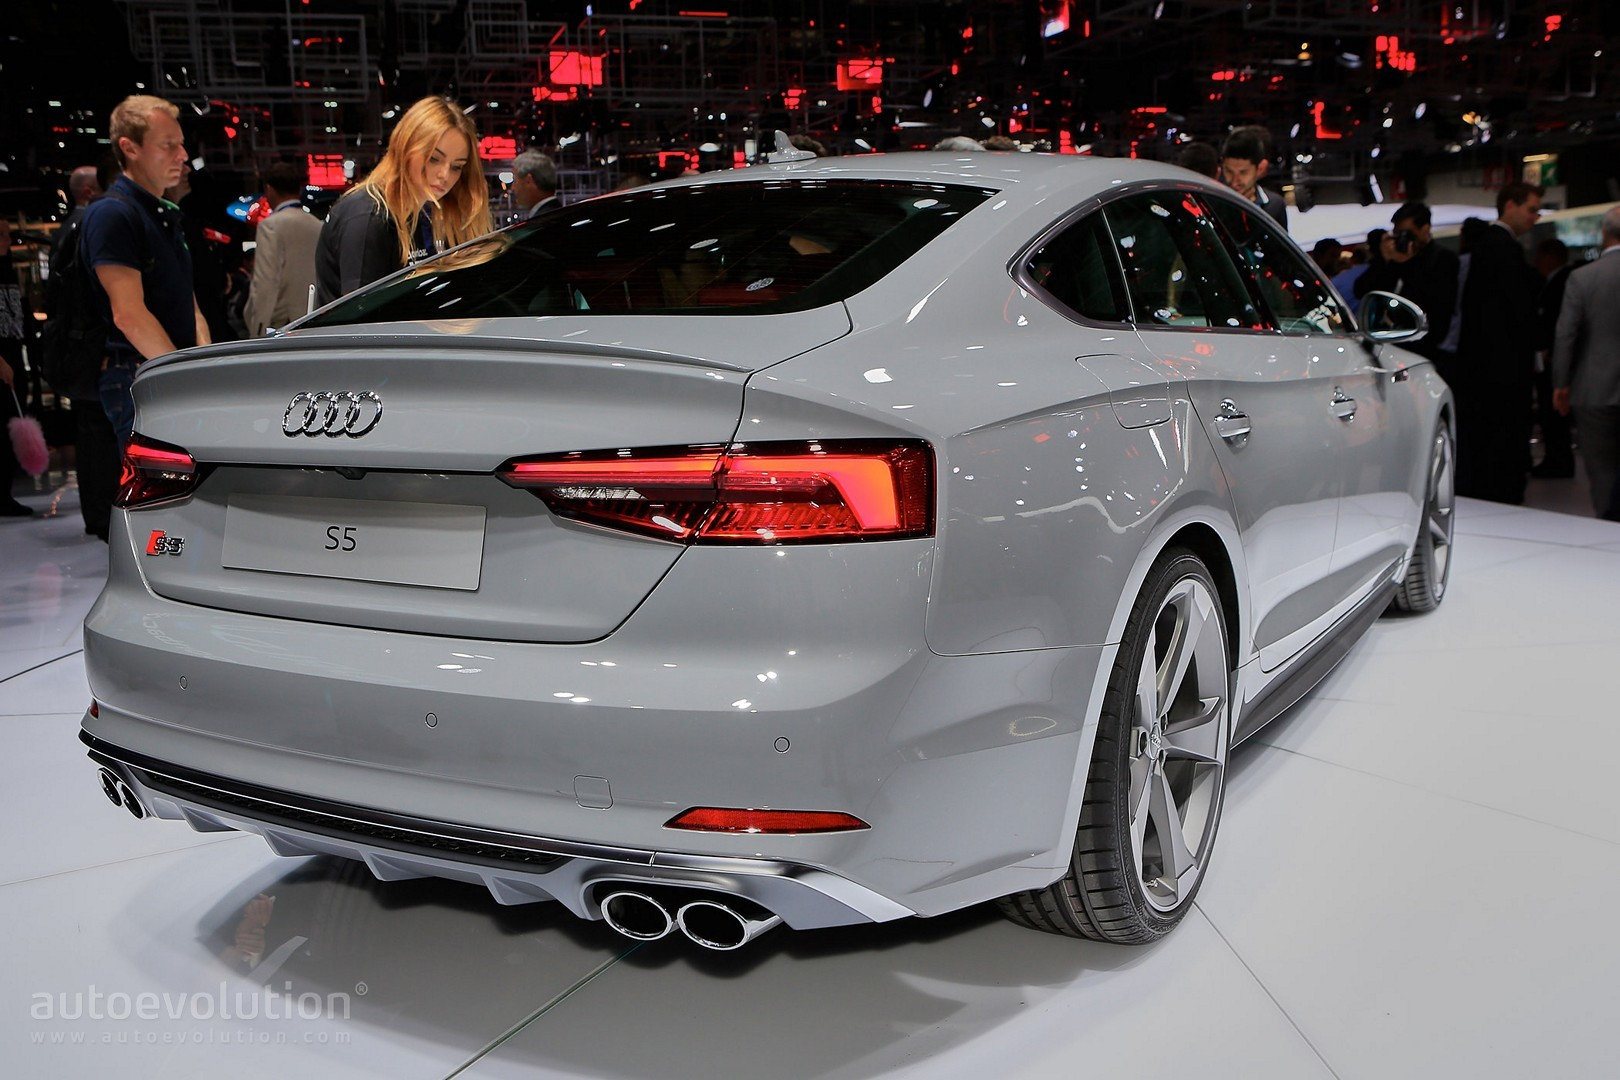 2017 Audi S5 Sportback Looks Like a Shark Thanks to Nardo Gray Paint ...